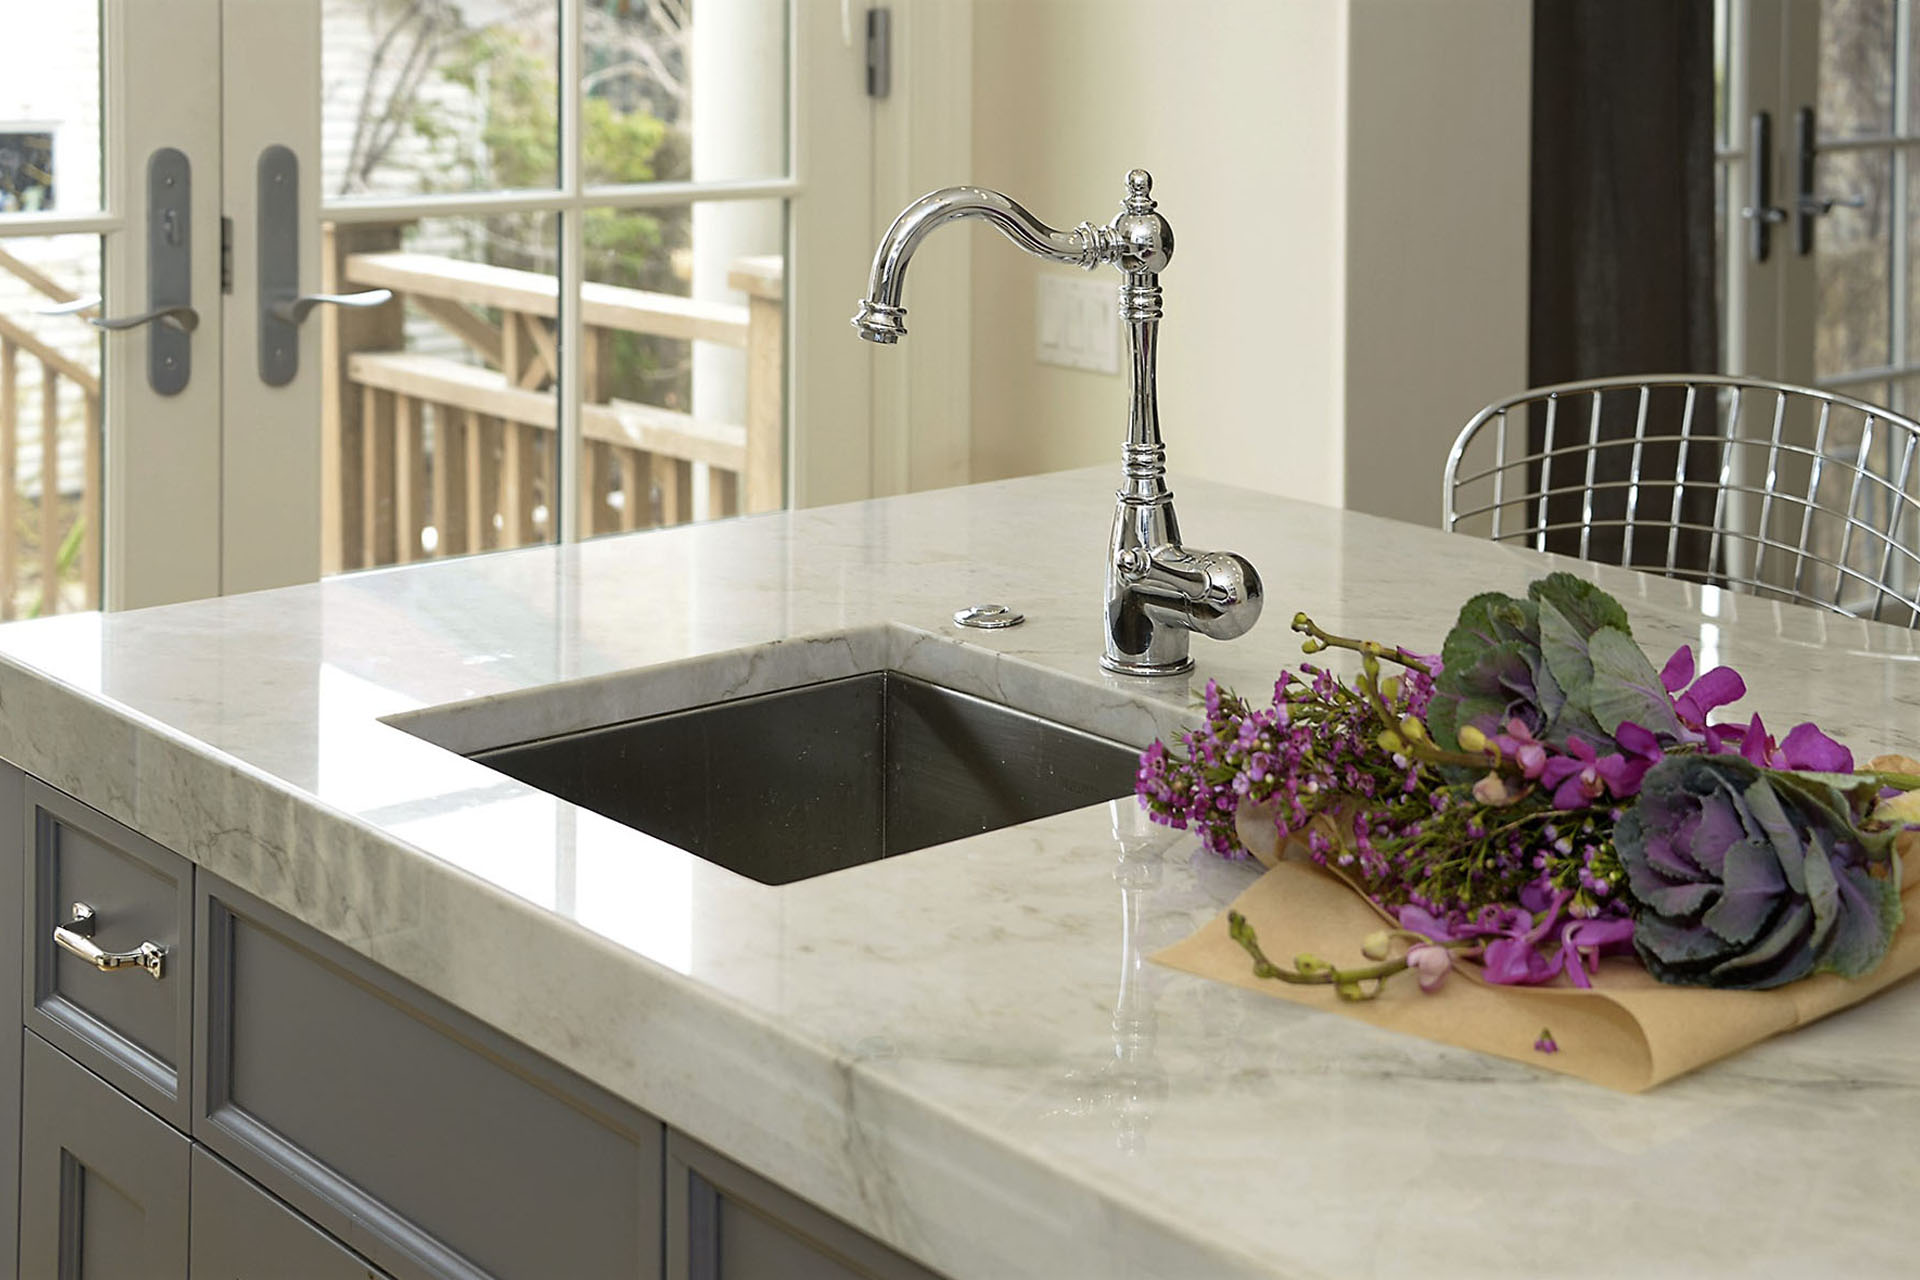 White corian worktop with moulded integrated stylish kitchen sink in Chicago